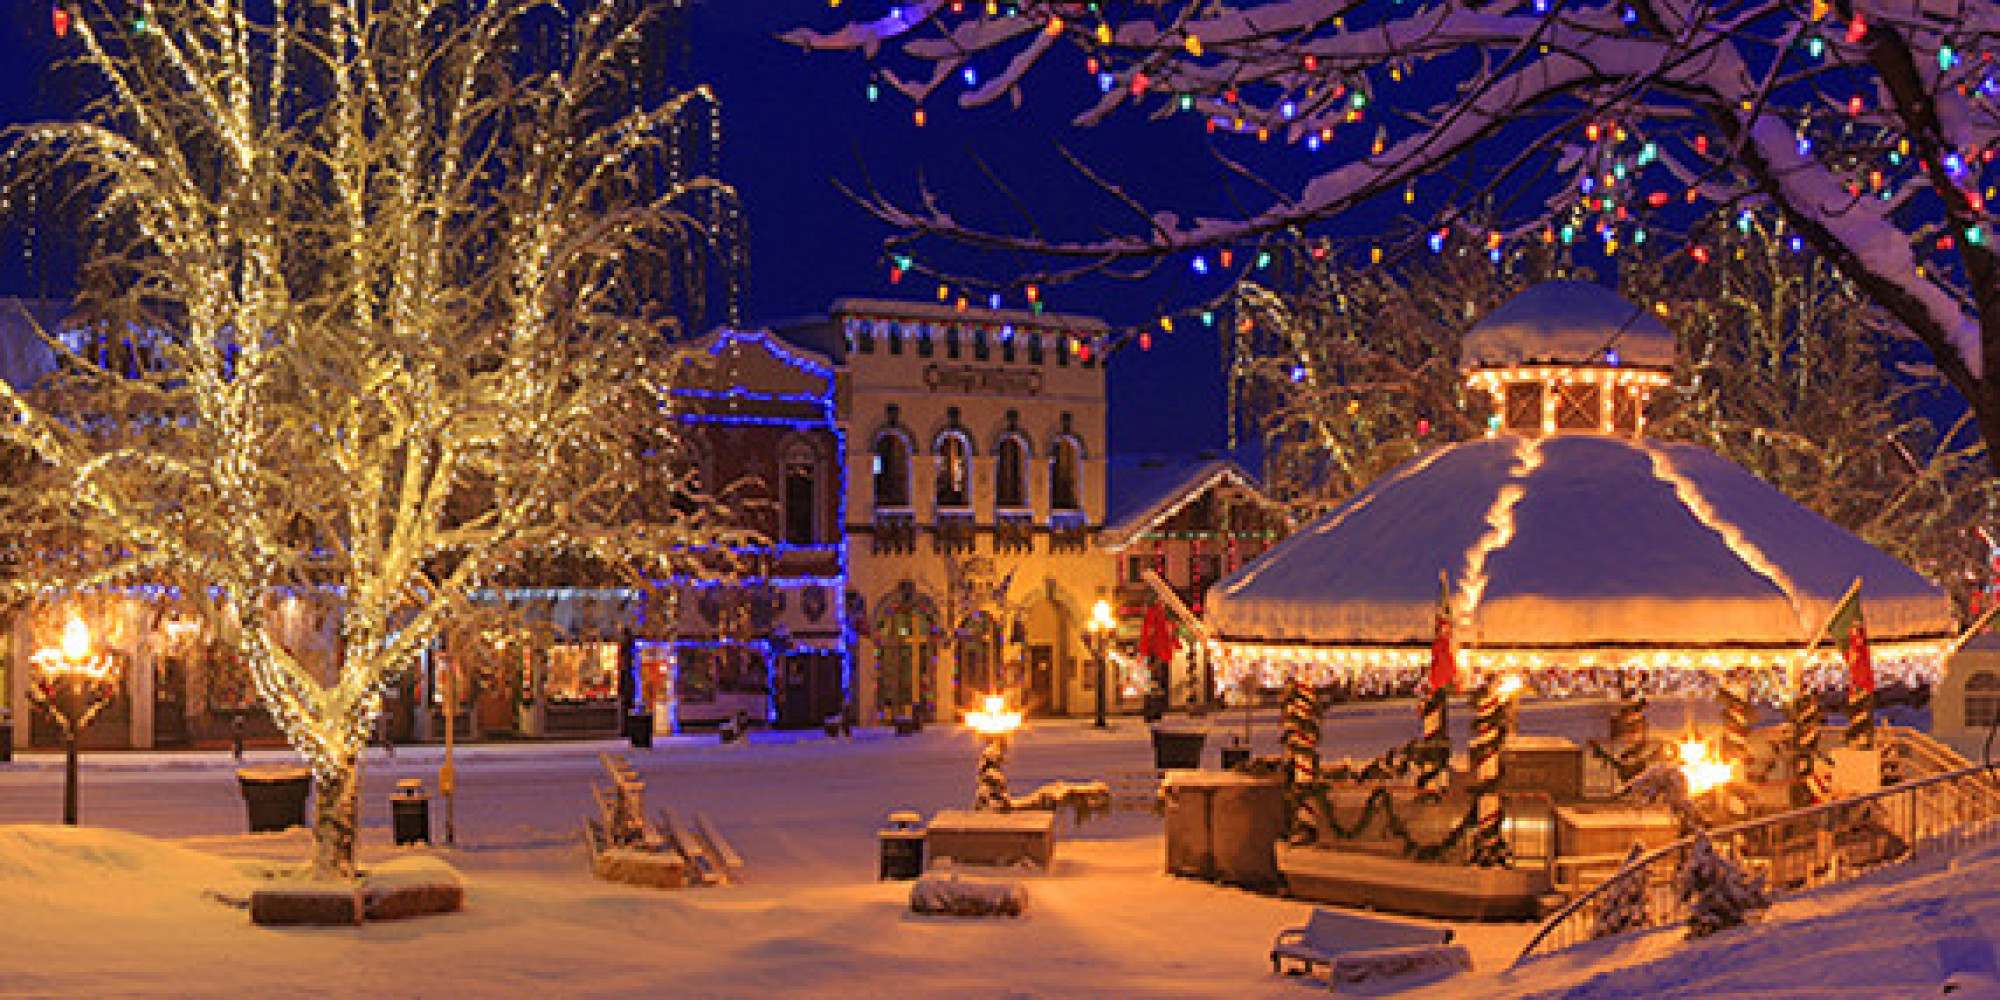 10 Best Small Towns for the Holidays | HuffPost